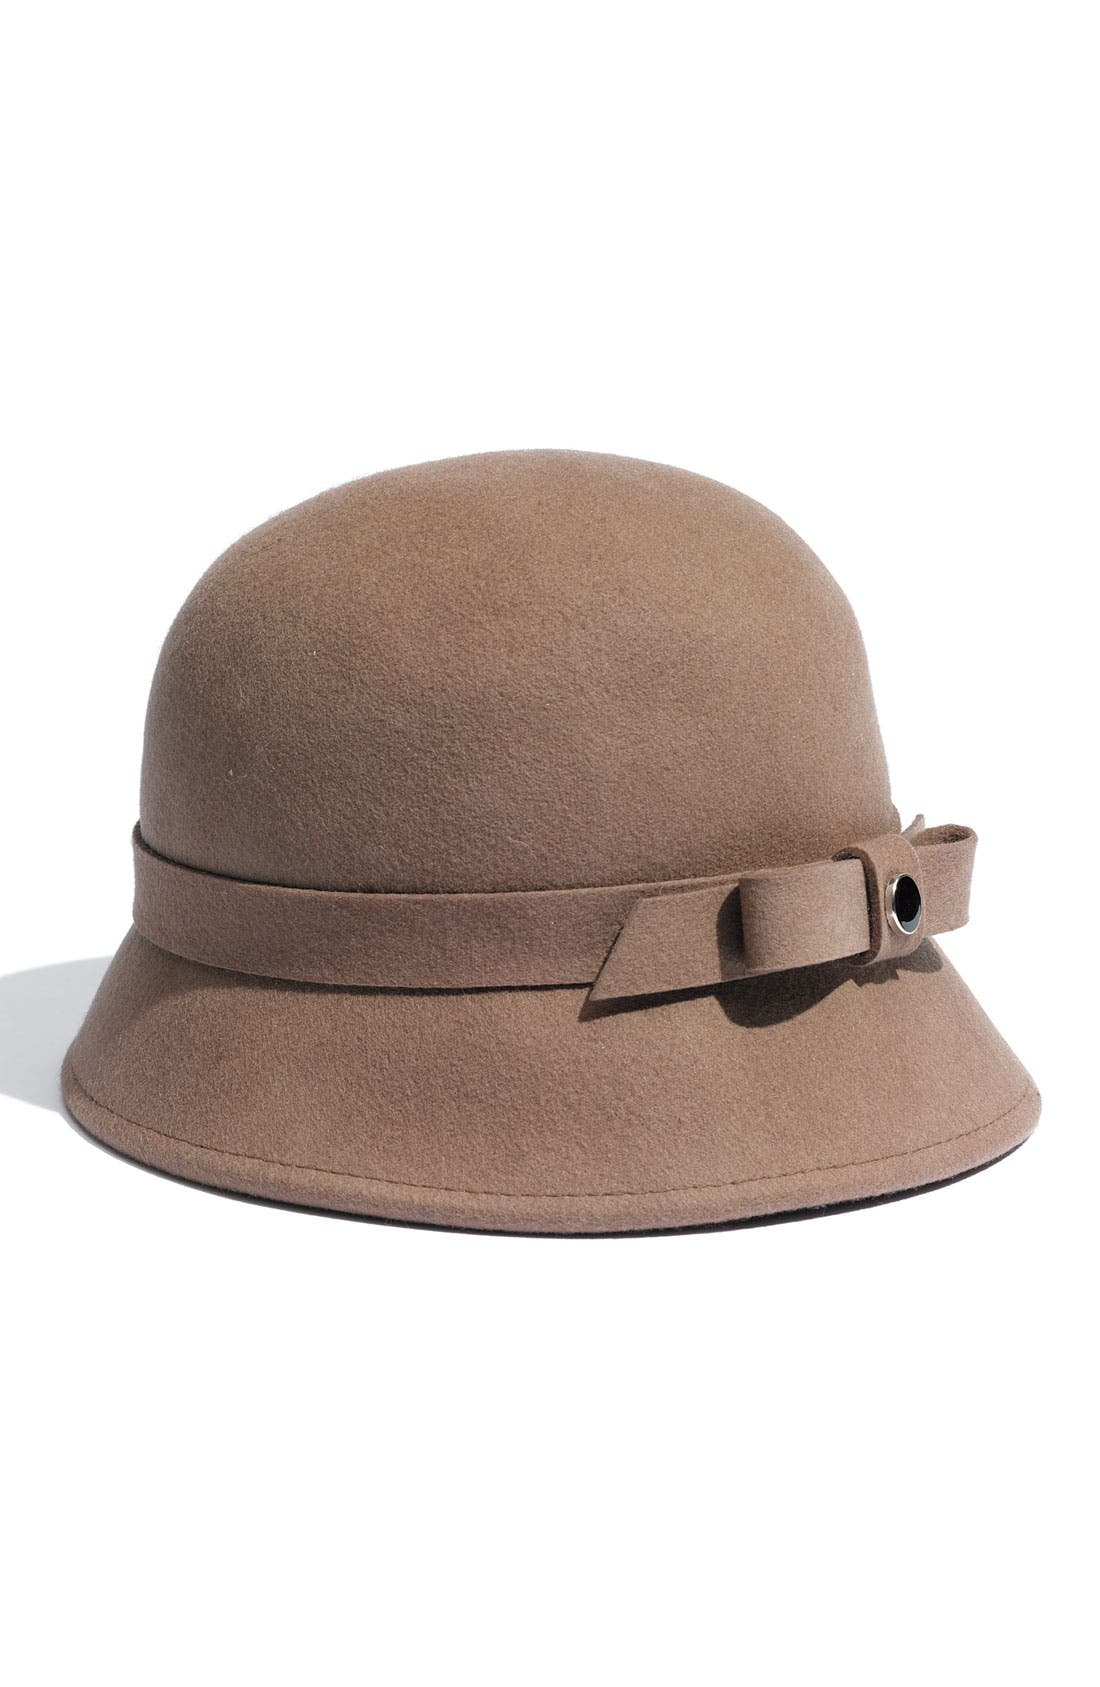 Main Image - Nordstrom Bow Trimmed Cloche